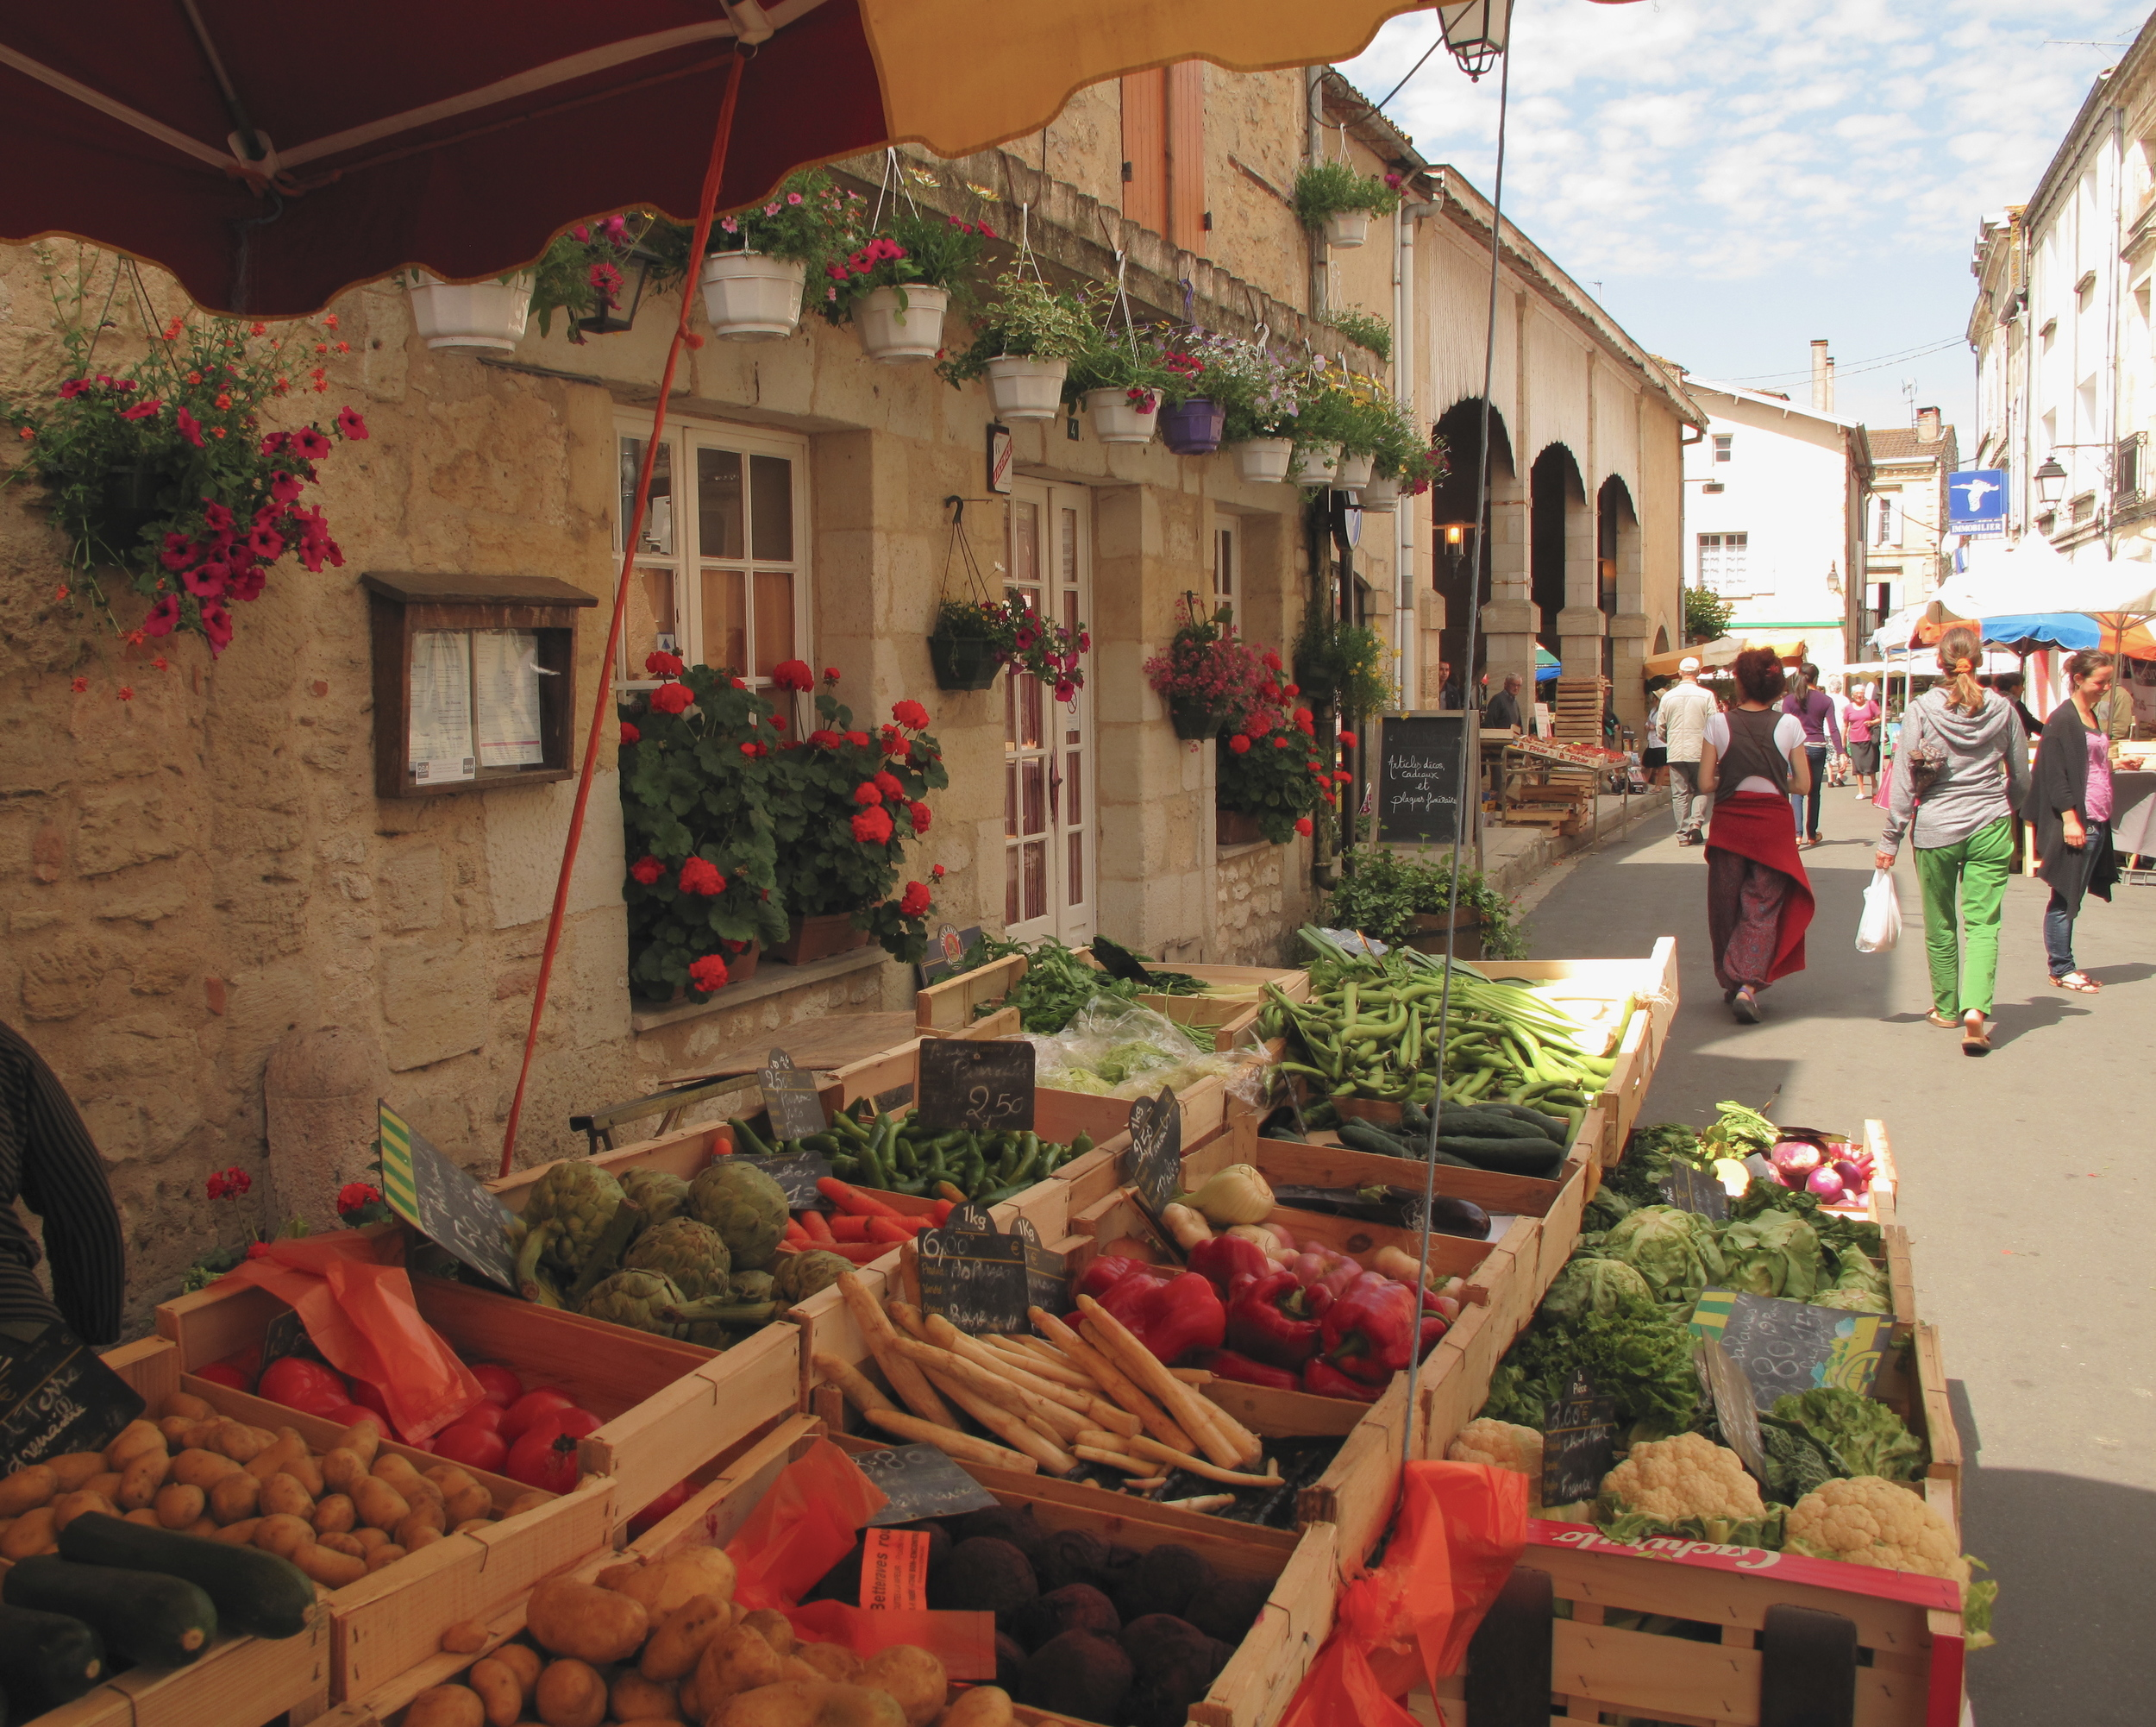 Market place in Duras - with spices, vegetables, garlic, olives, wine and truffles.